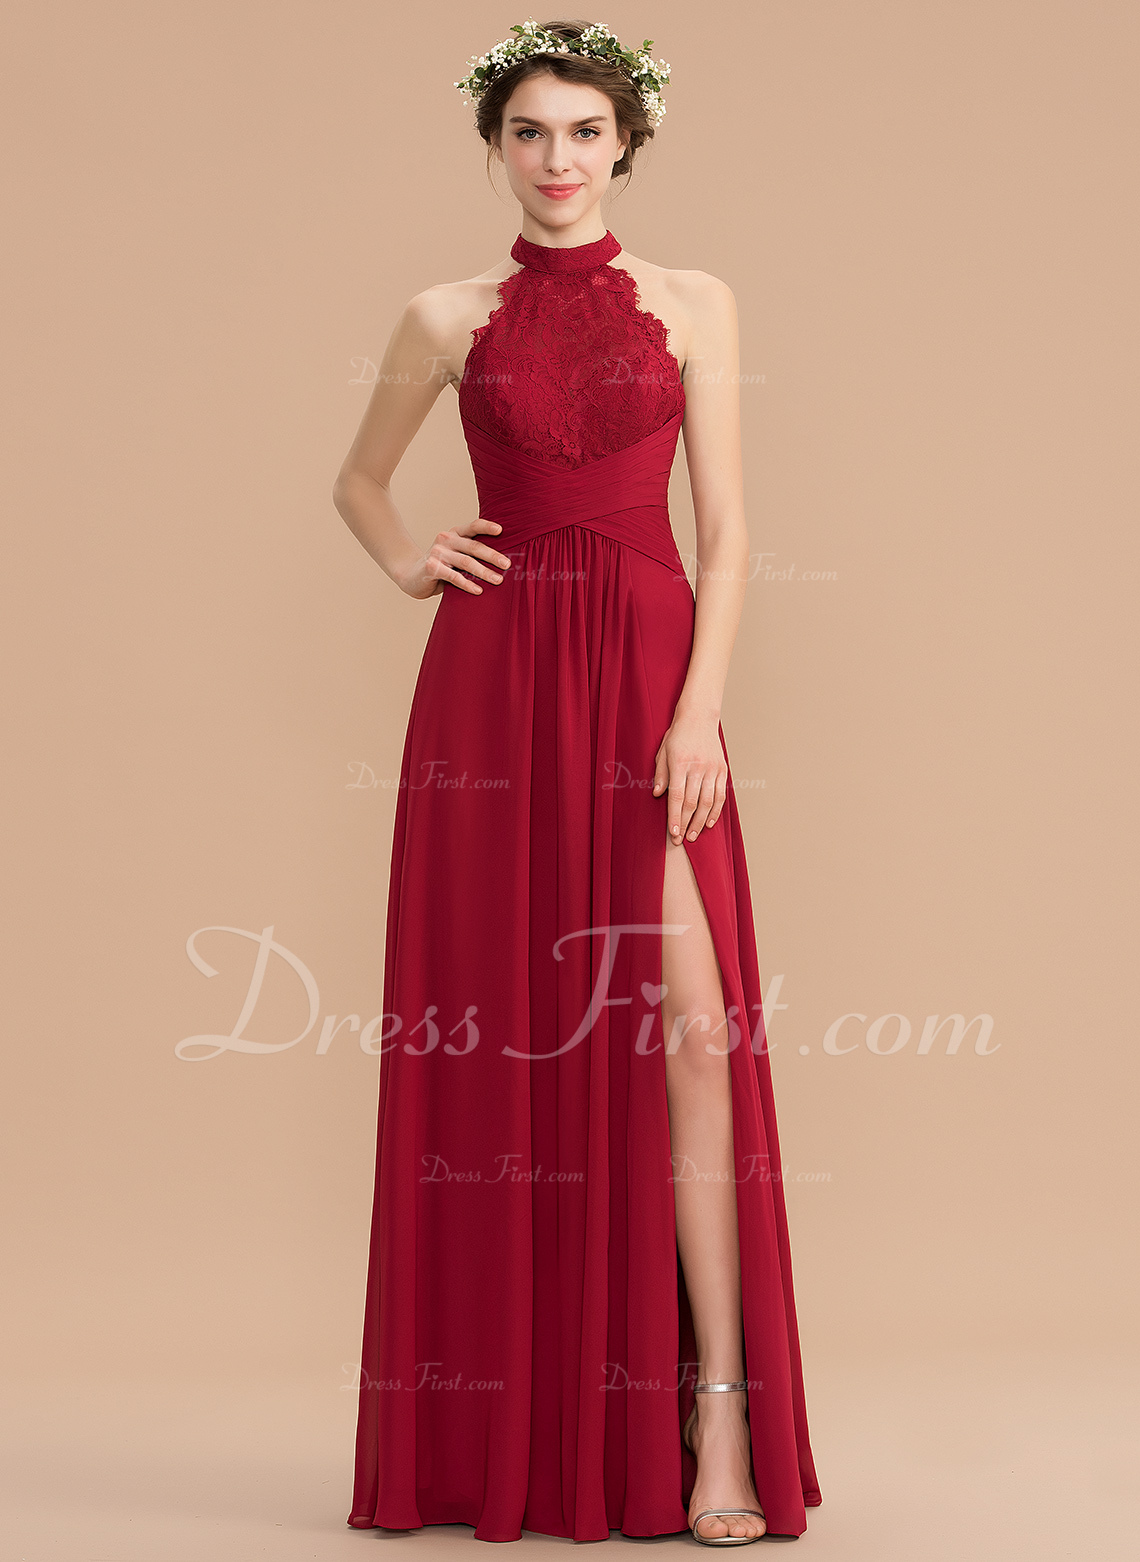 0c7b4e29c08 Loading zoom. Loading. Color  Burgundy. A-Line High Neck Floor-Length  Chiffon Lace Bridesmaid Dress With Ruffle ...